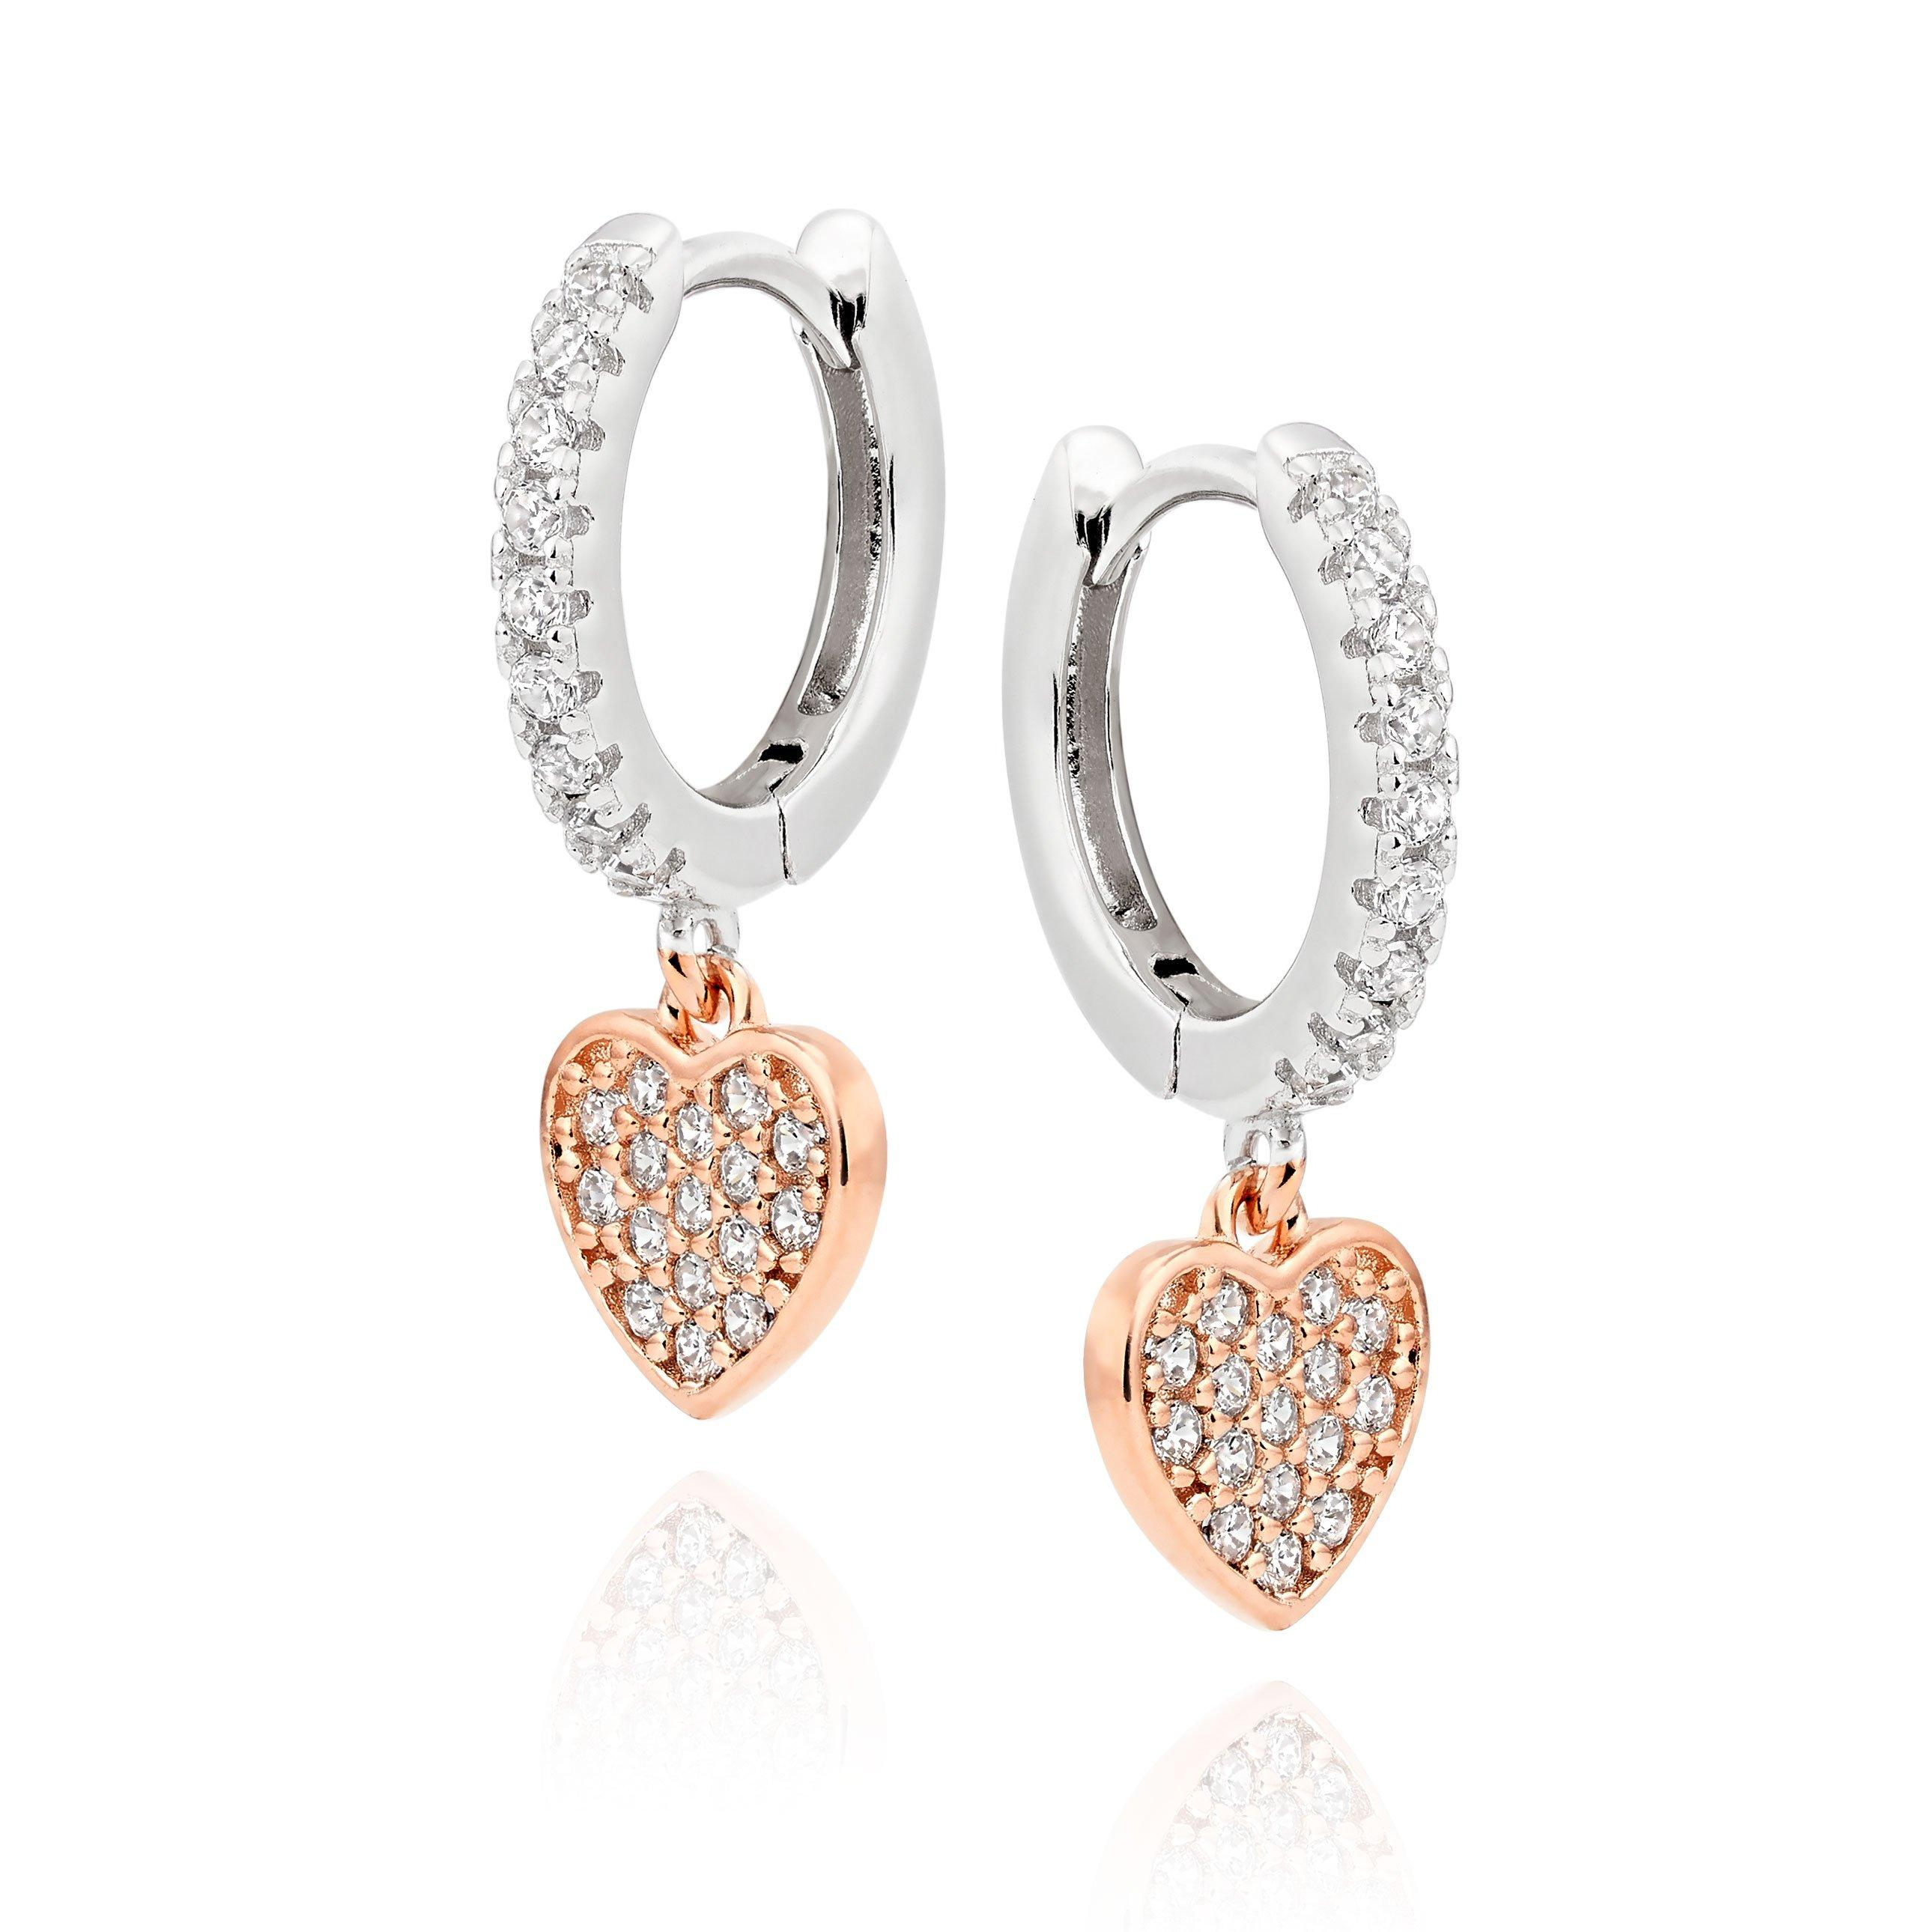 Silver Rose Gold Plated Cubic Zirconia Heart Hoop Earrings